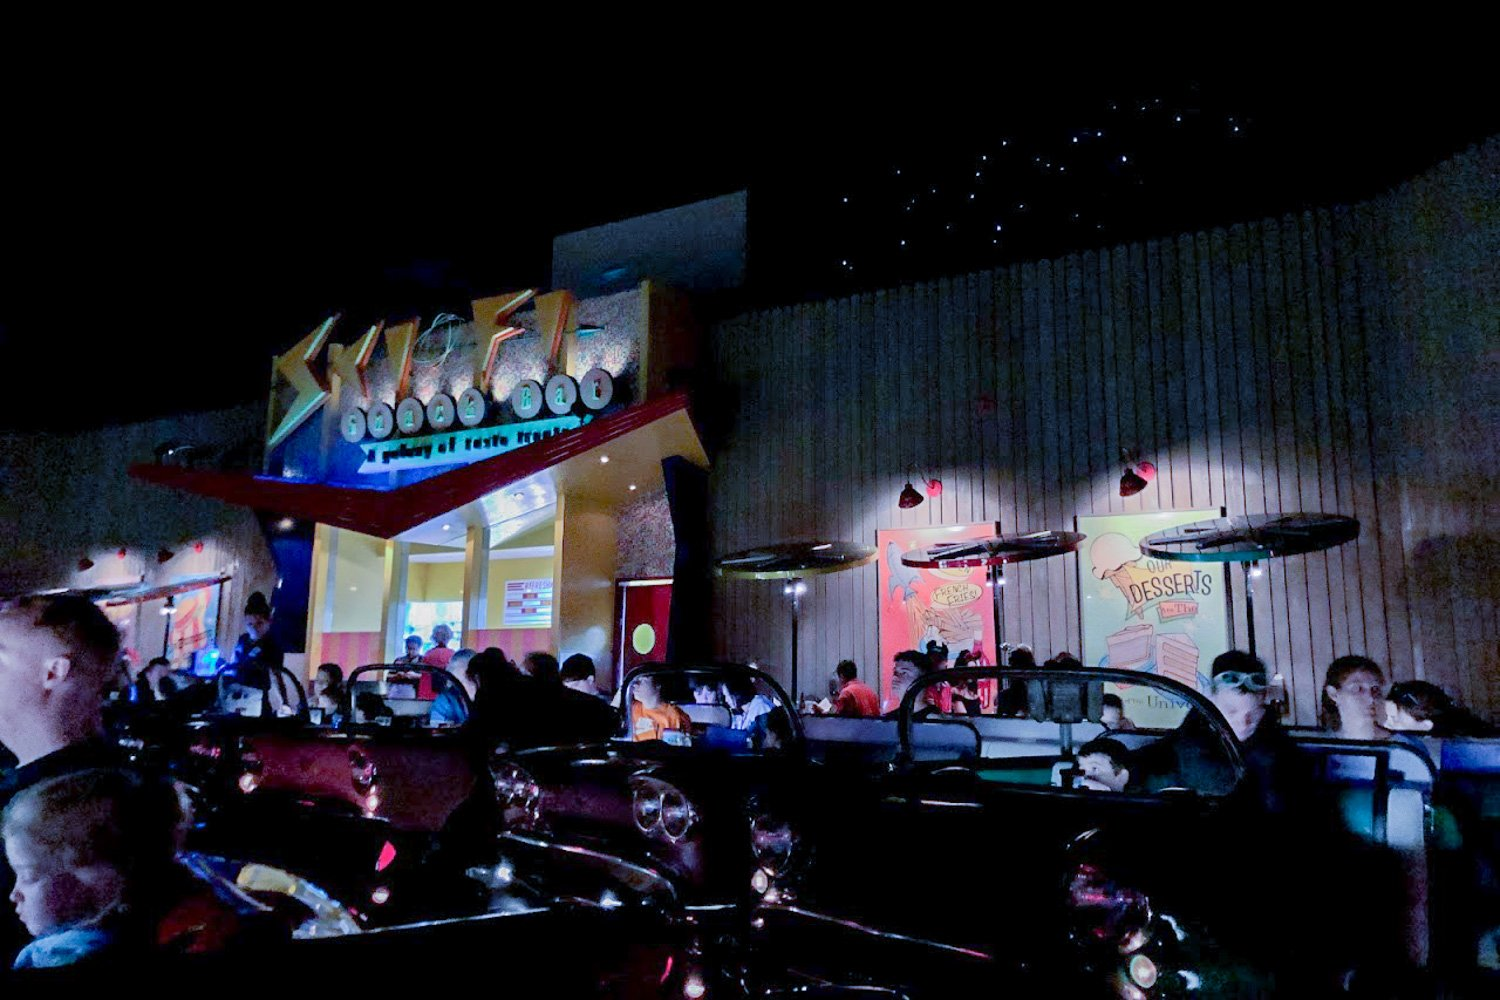 Sci-Fi Dine-In Theater Photo